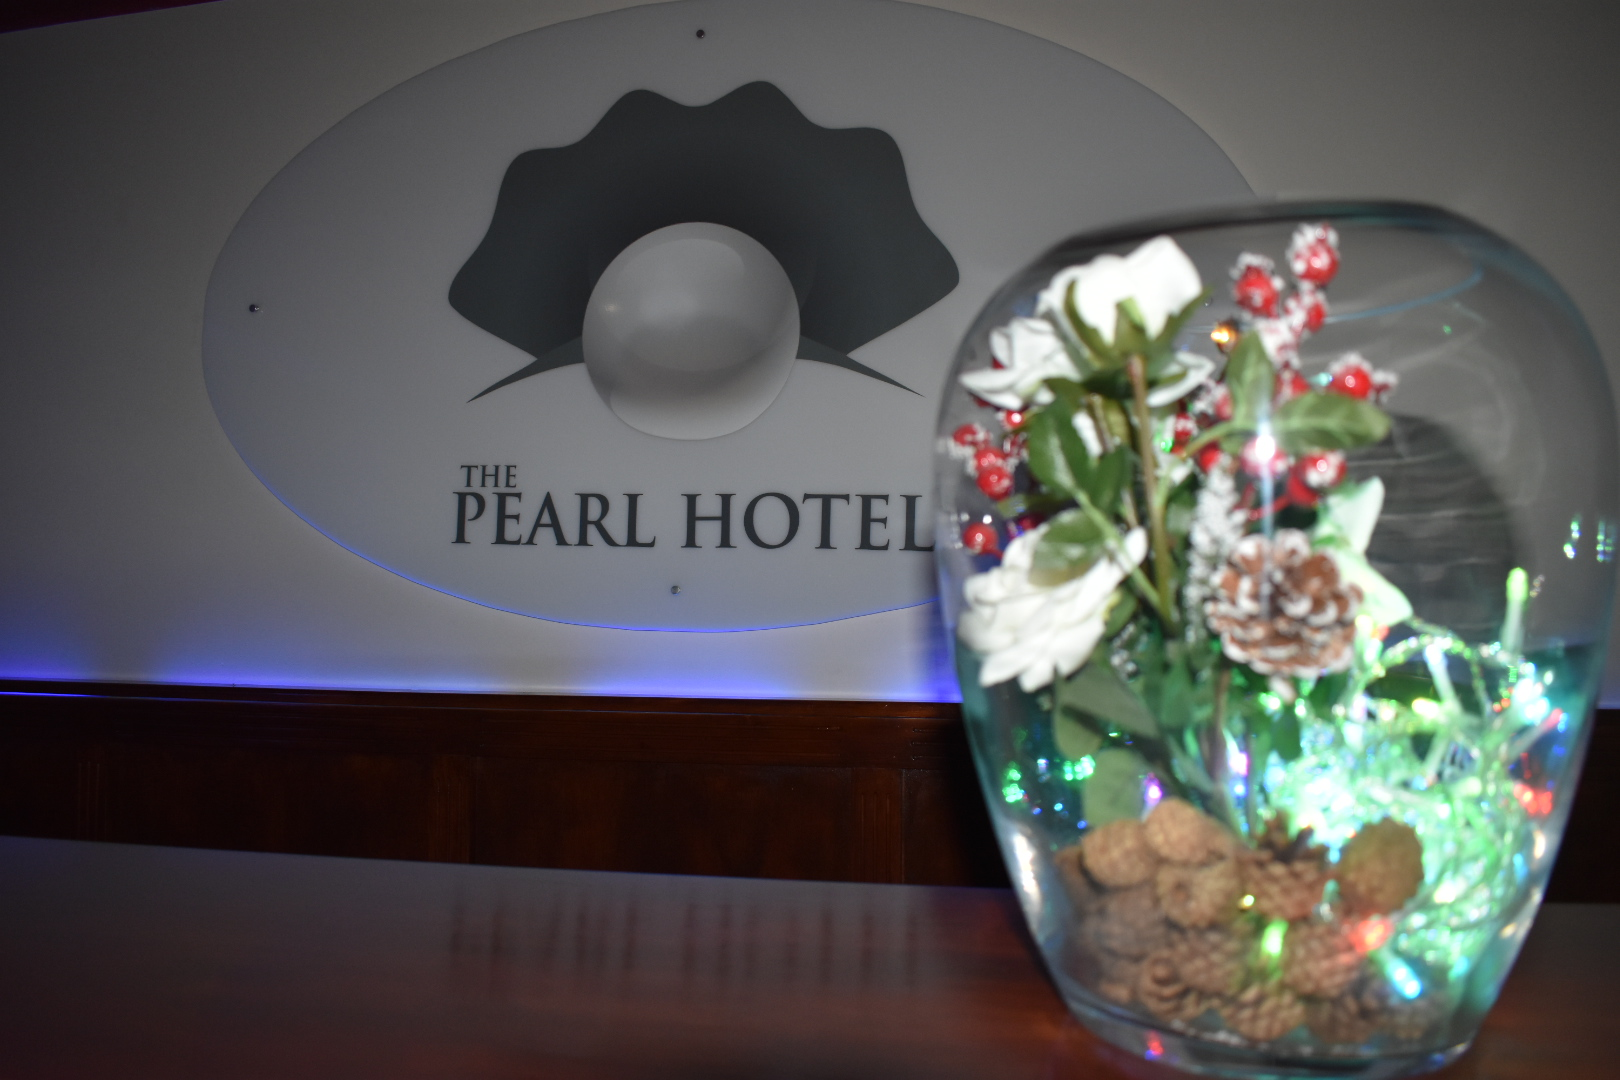 The Pearl Hotel, Peterborough, UK with room service from the Tavan Moroccan and Turkish Restaurant.